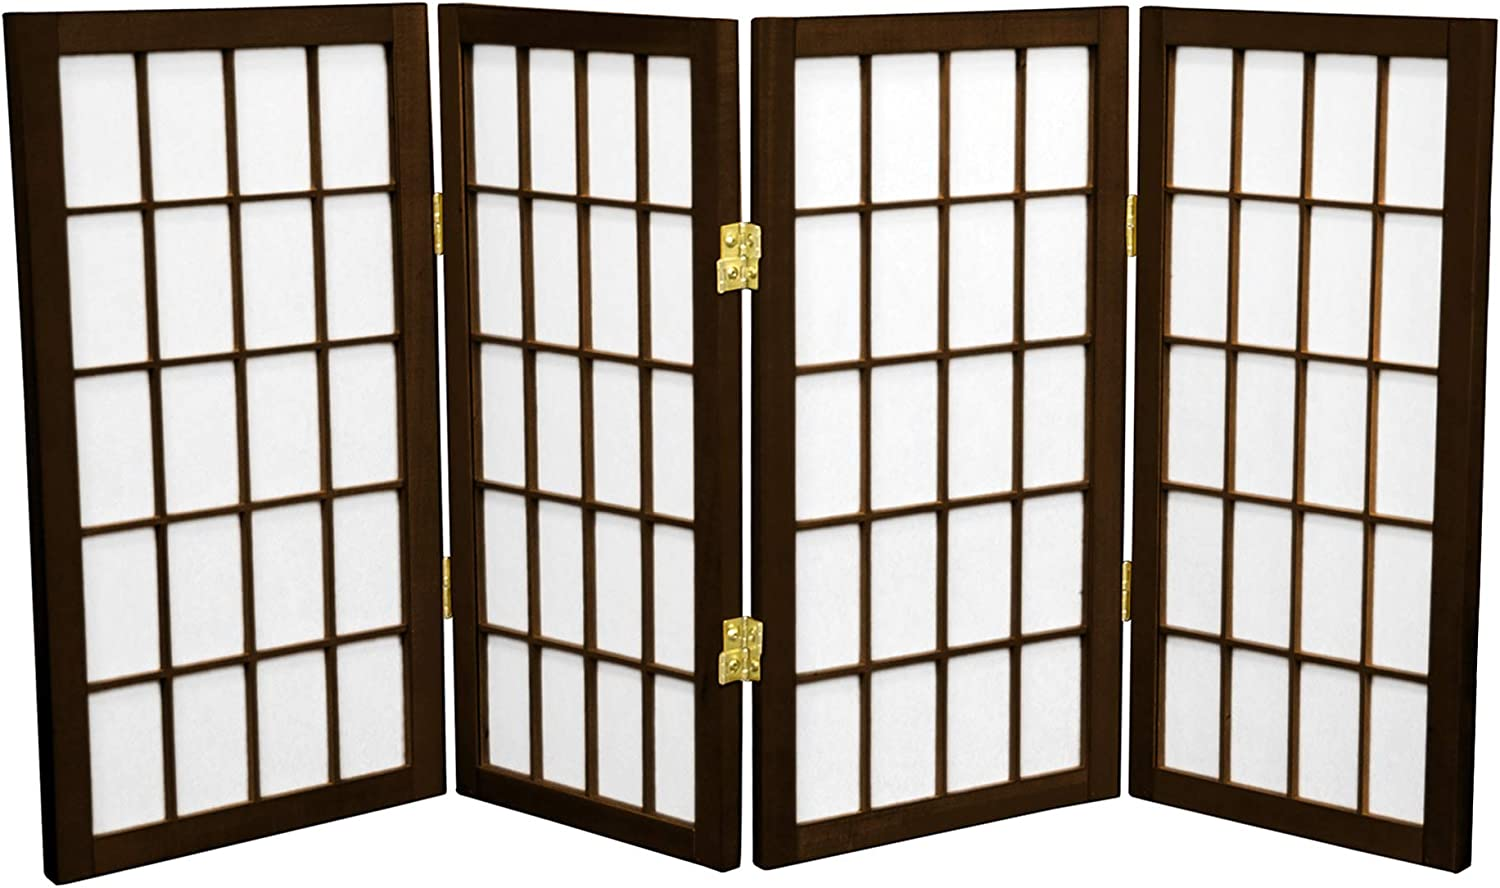 Oriental Furniture 2 ft. Tall Desktop Window Pane Shoji Screen - Walnut - 4 Panels